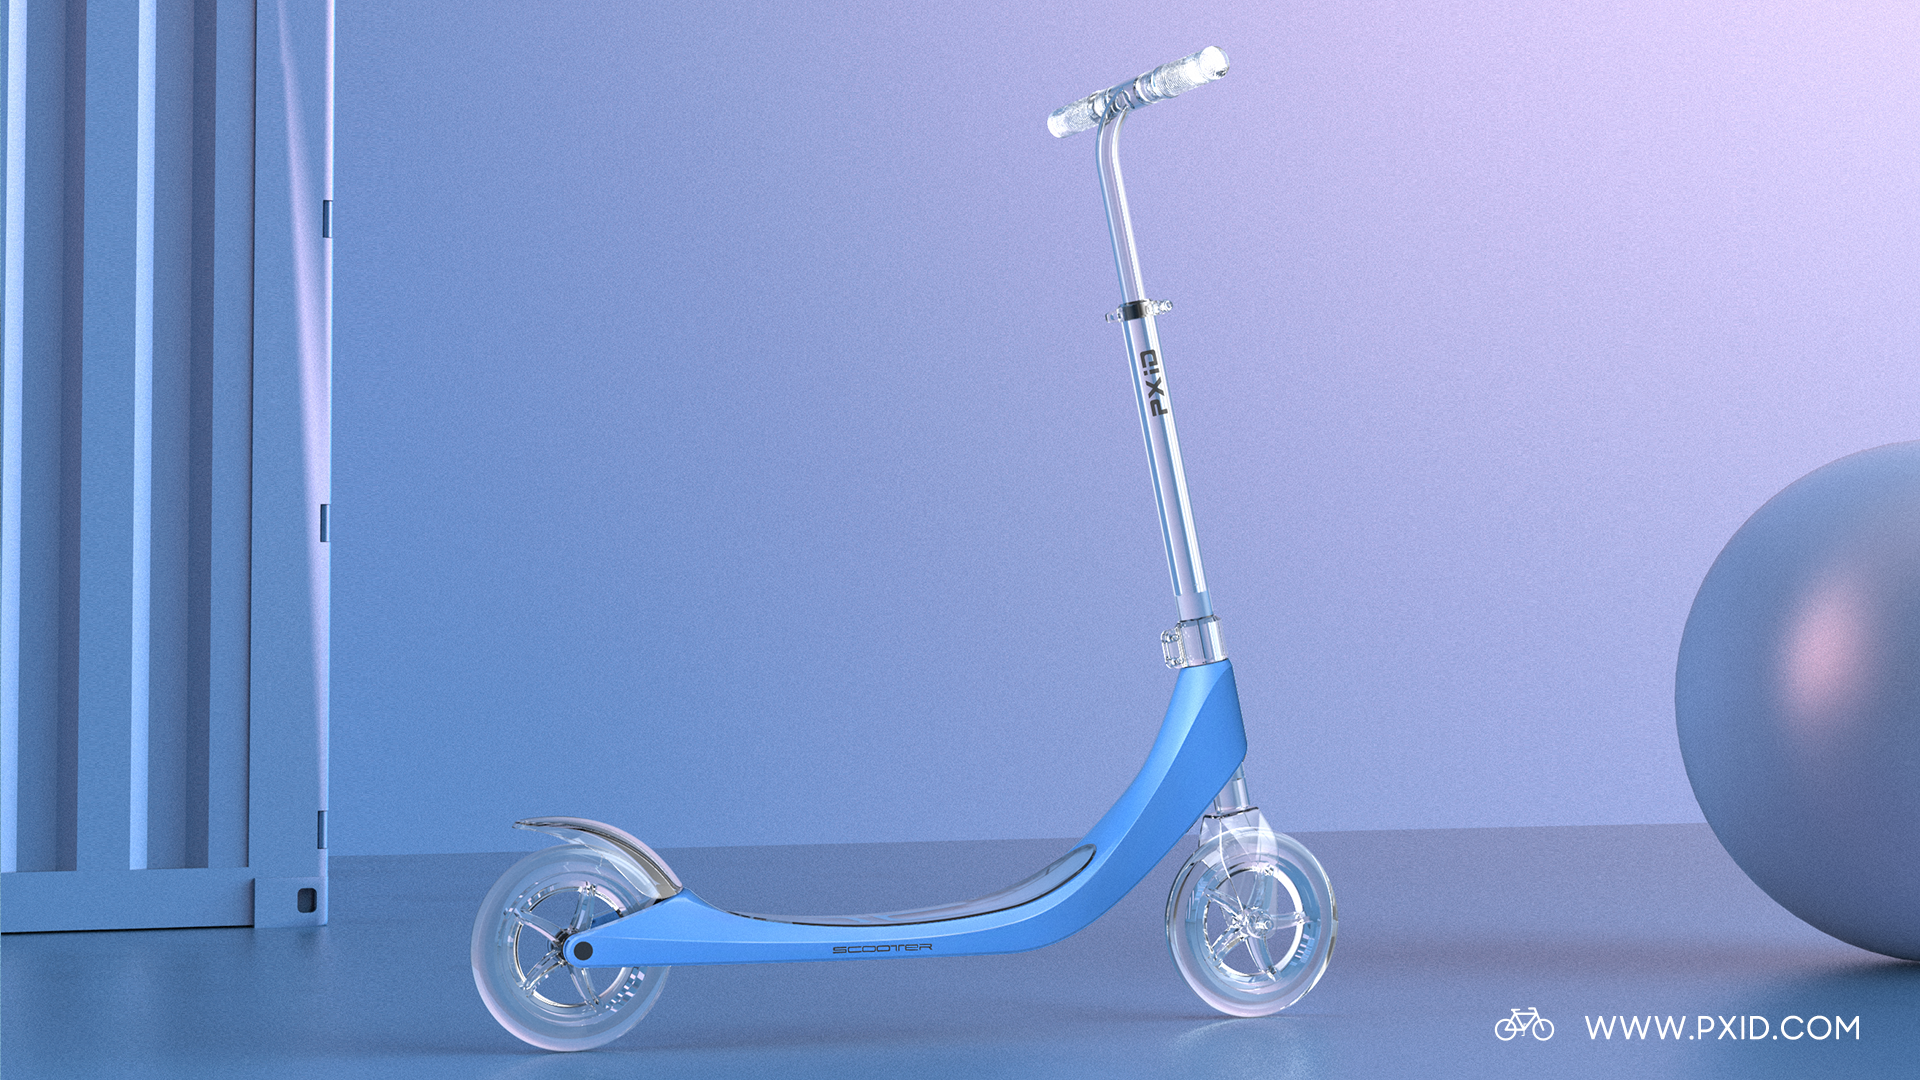 PXID 200 wheel non-drive scooter design